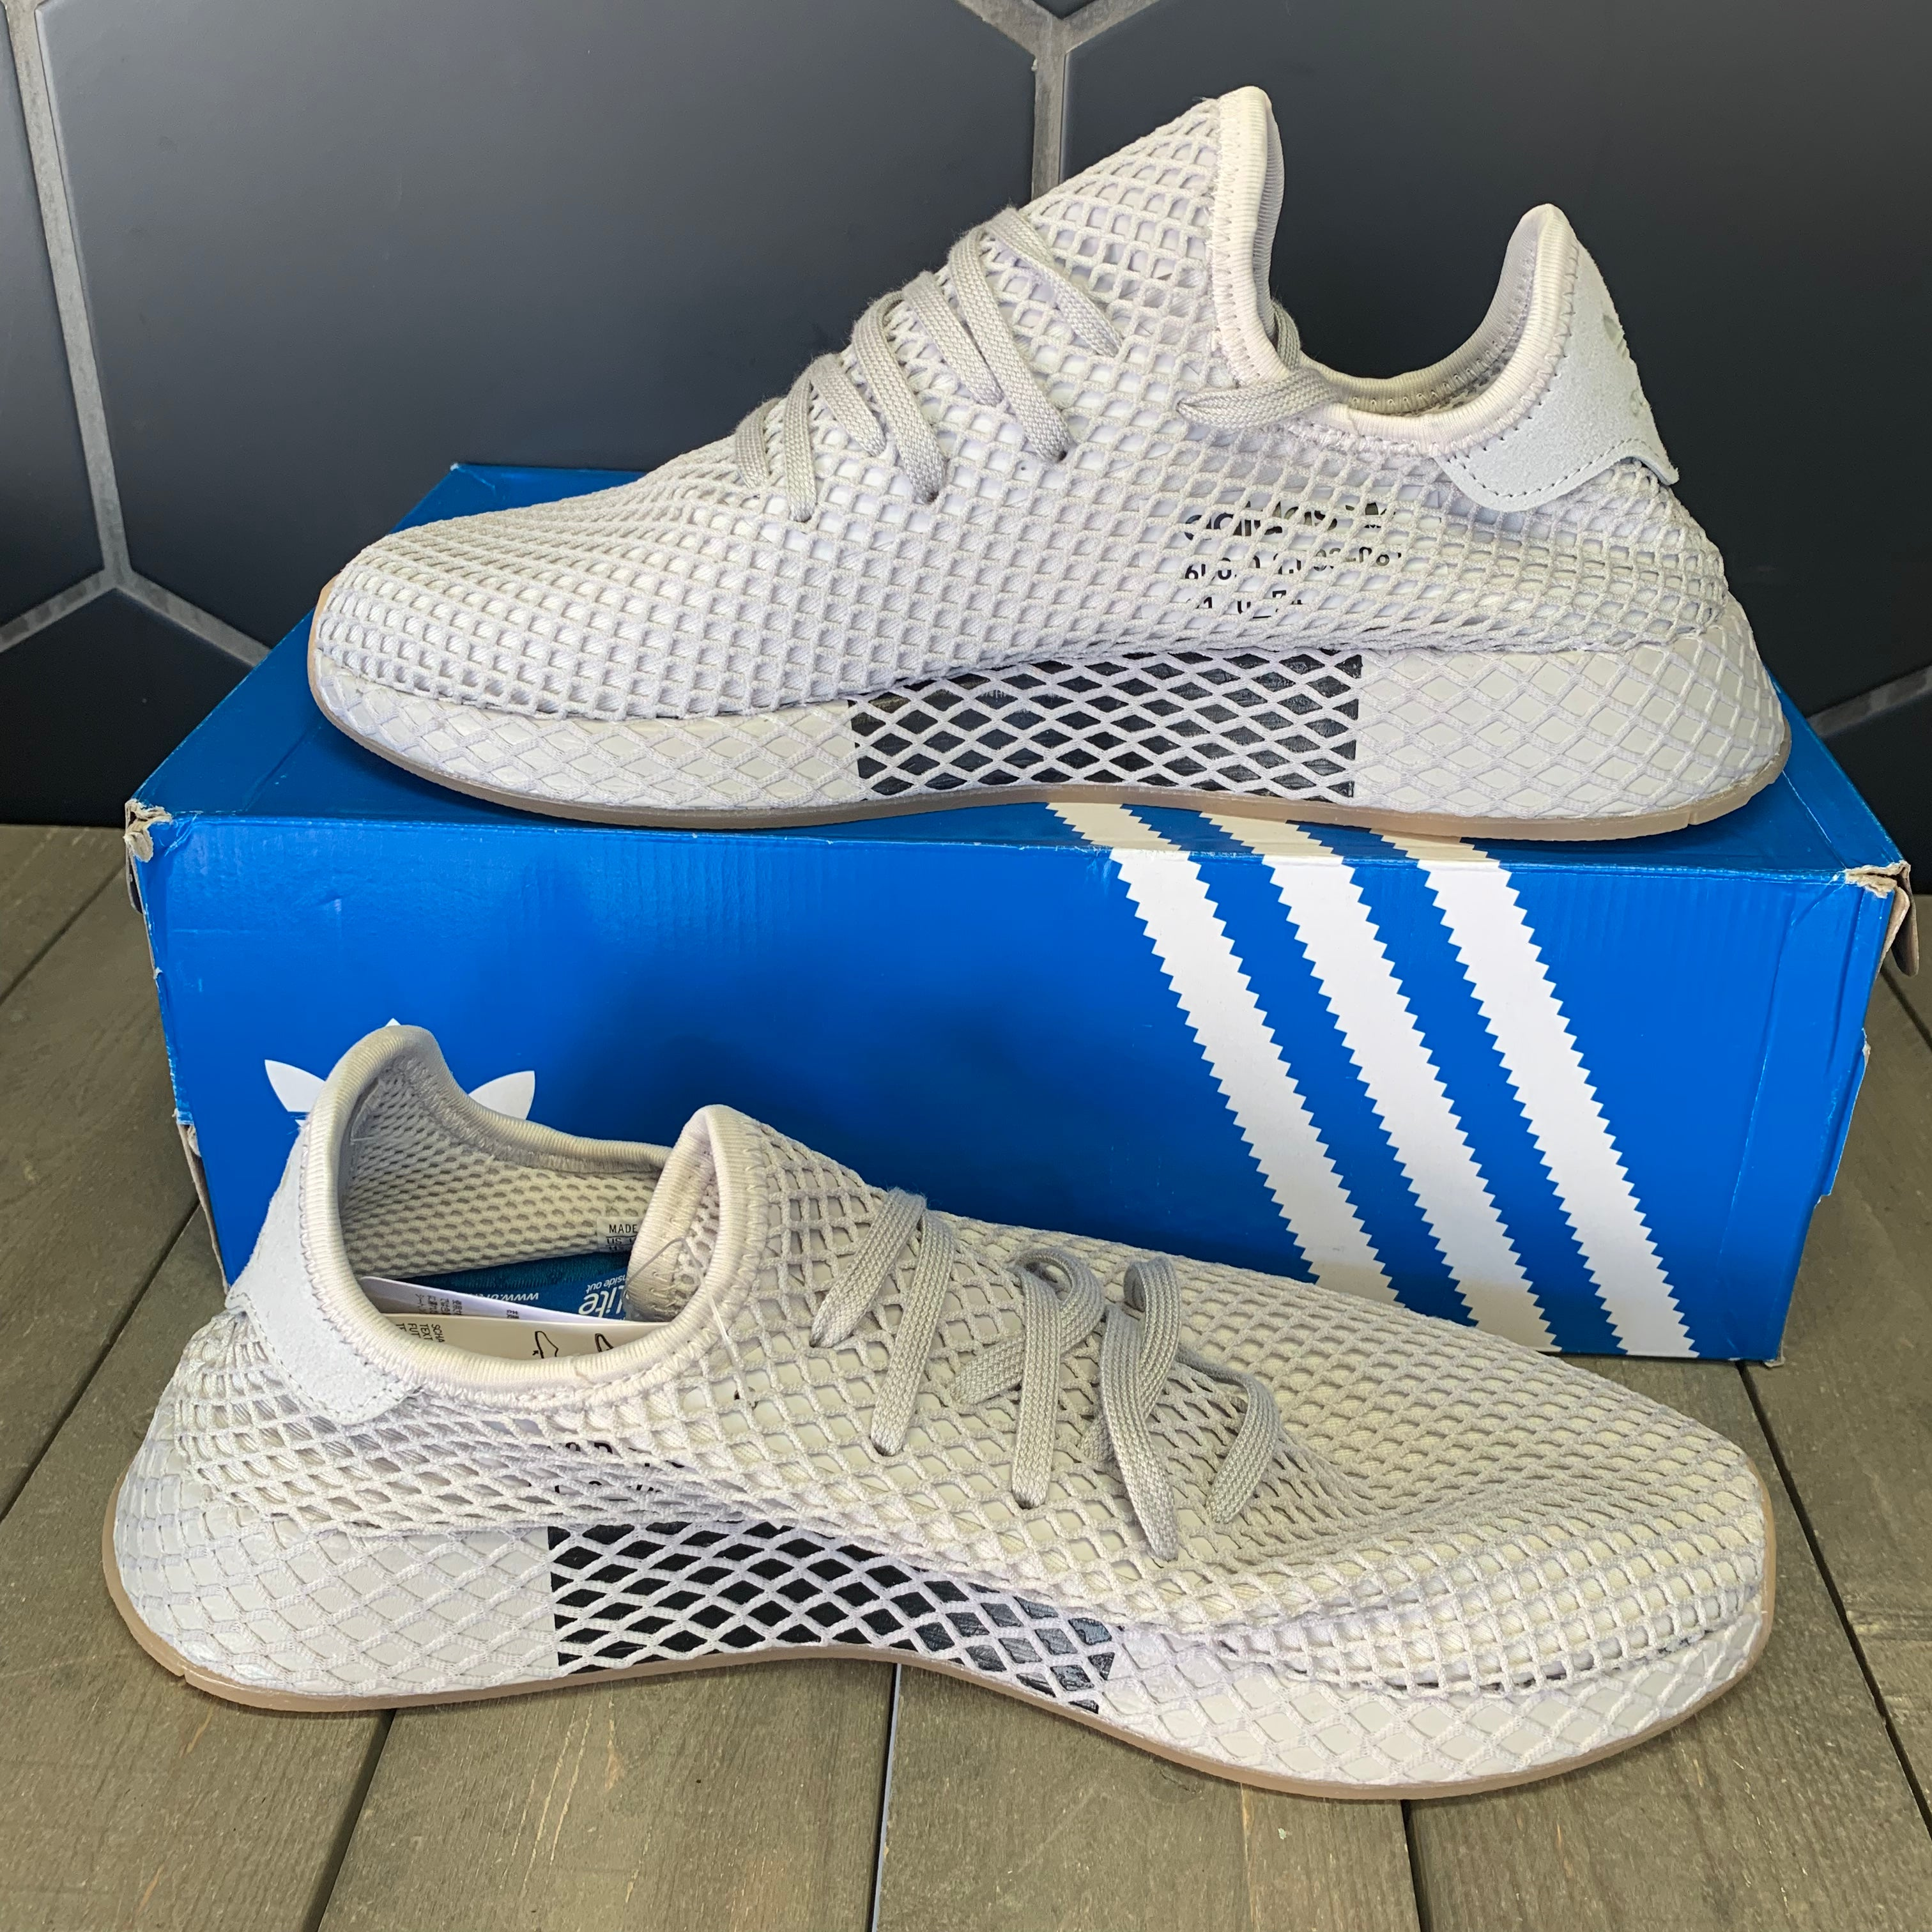 New W/ Box! Adidas Deerupt Runner Muted Neon Light Grey Shoe (Multiple Sizes)